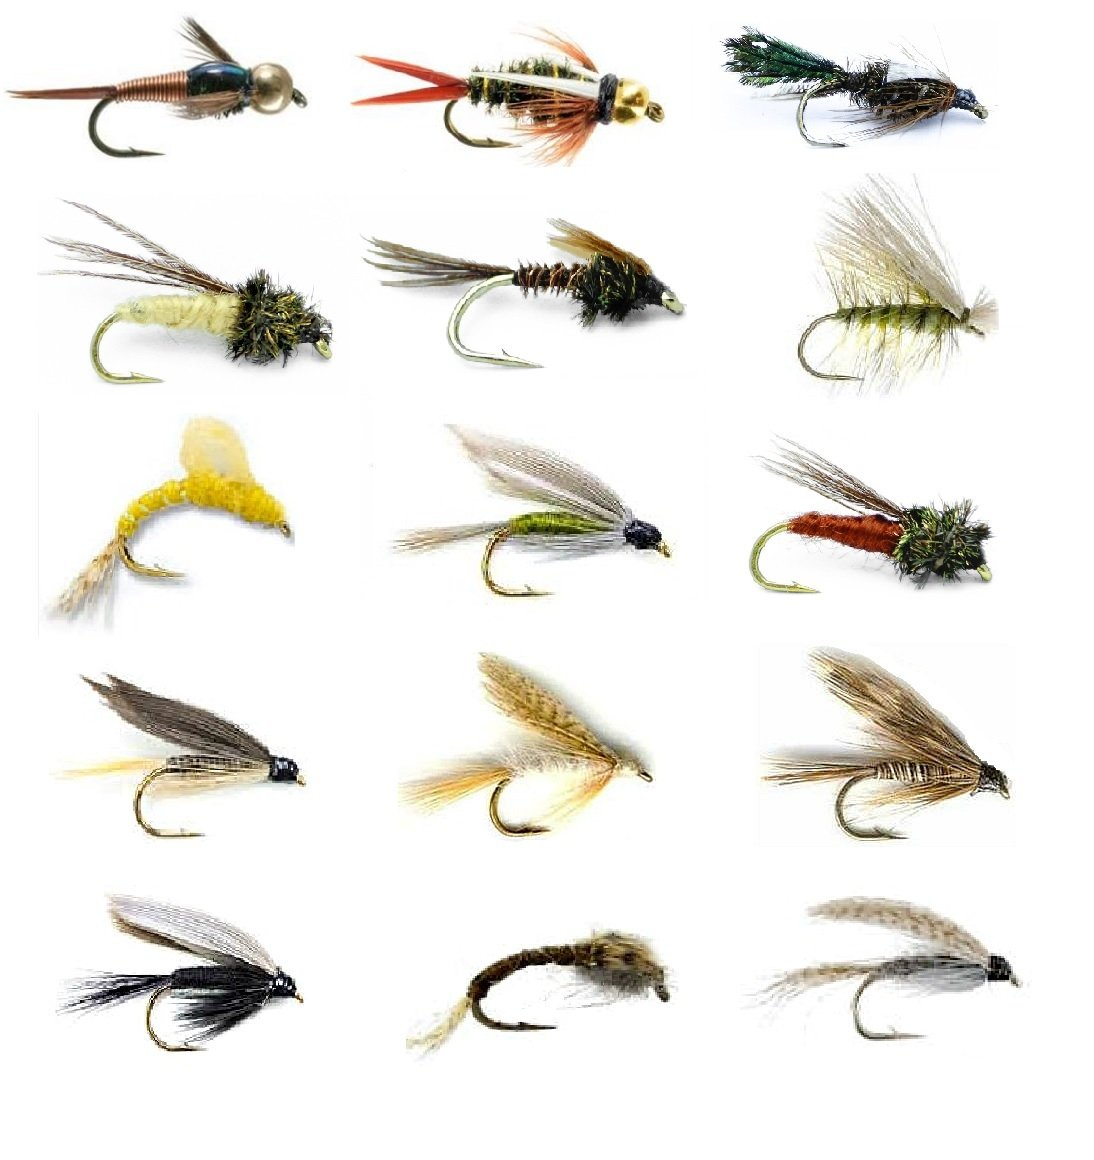 Fly Fishing Flies Assortment - Popular for Trout Fishing and Other Freshwater Fish - 30 Wet Flies - 15 Patterns Nymphs, Emergers, Bead Head Prince, Copper John, Mayflies, Caddis, and More (30)